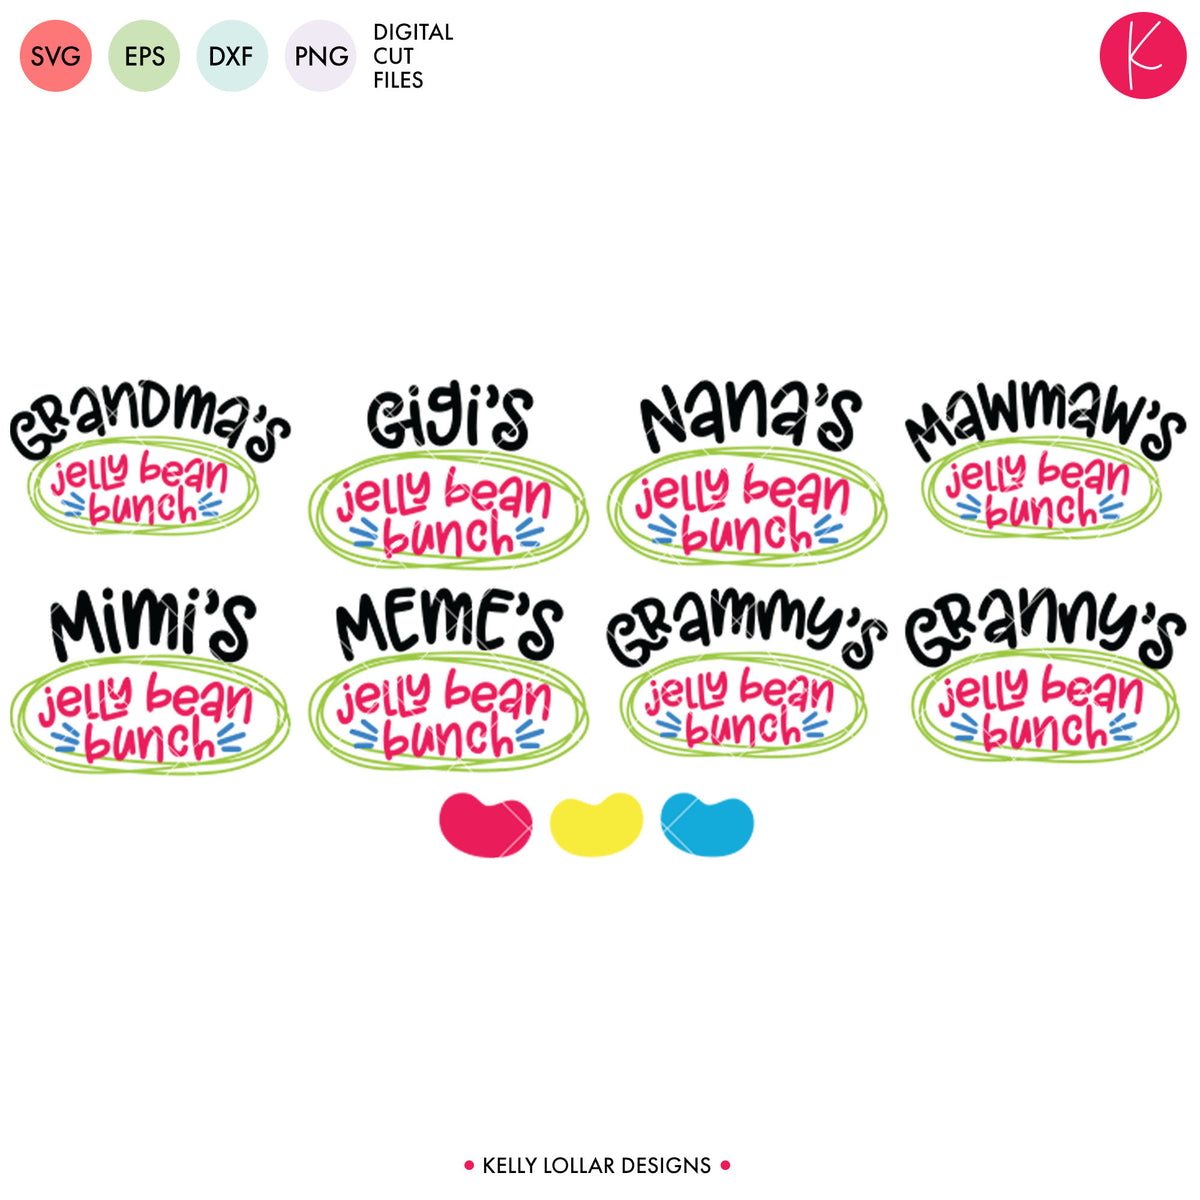 Grandma Jelly Bean Bunch Pack | SVG DXF EPS PNG Cut Files